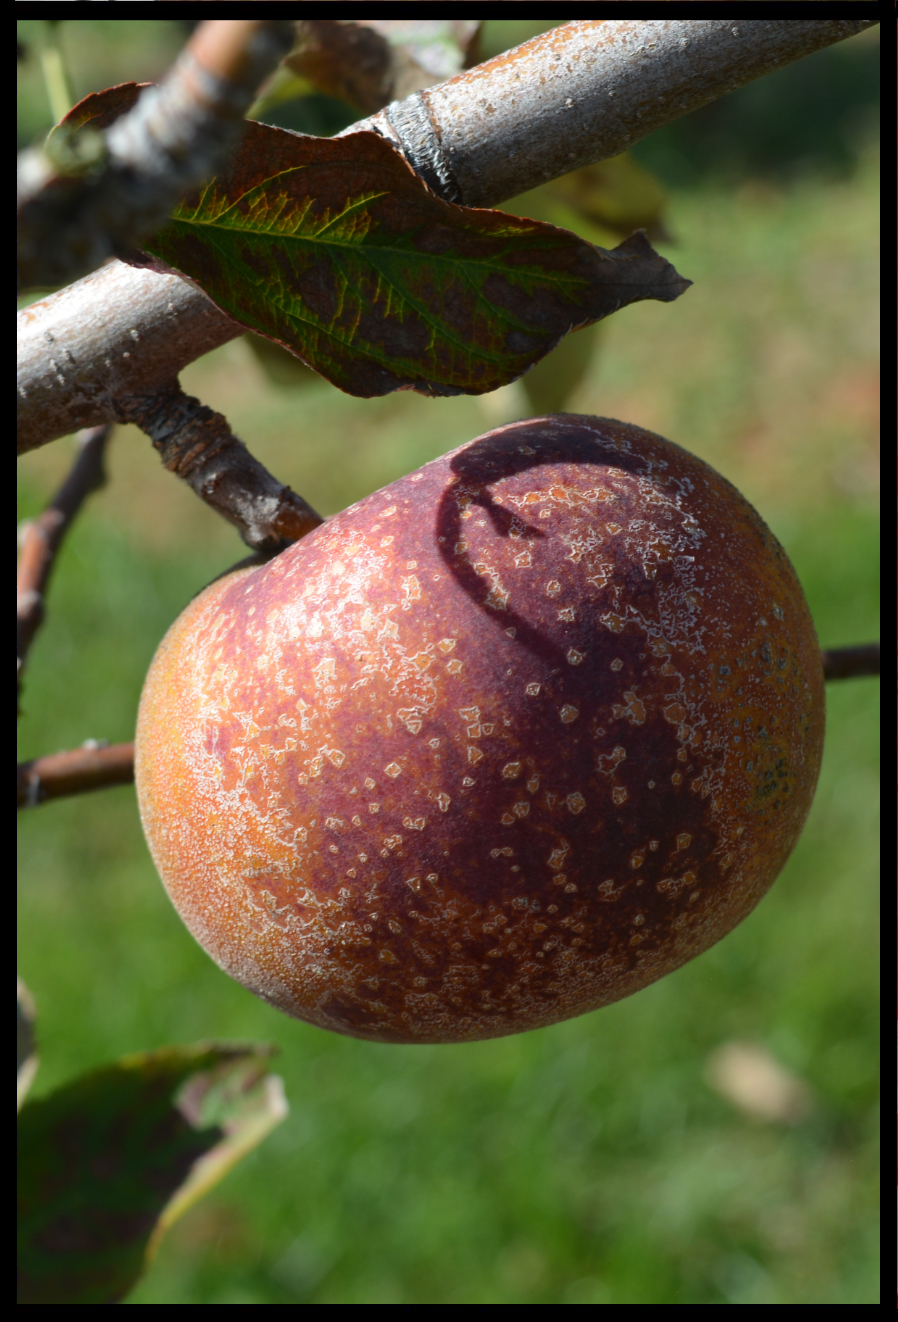 dark red apple nearly covered with rough brown spots and patches